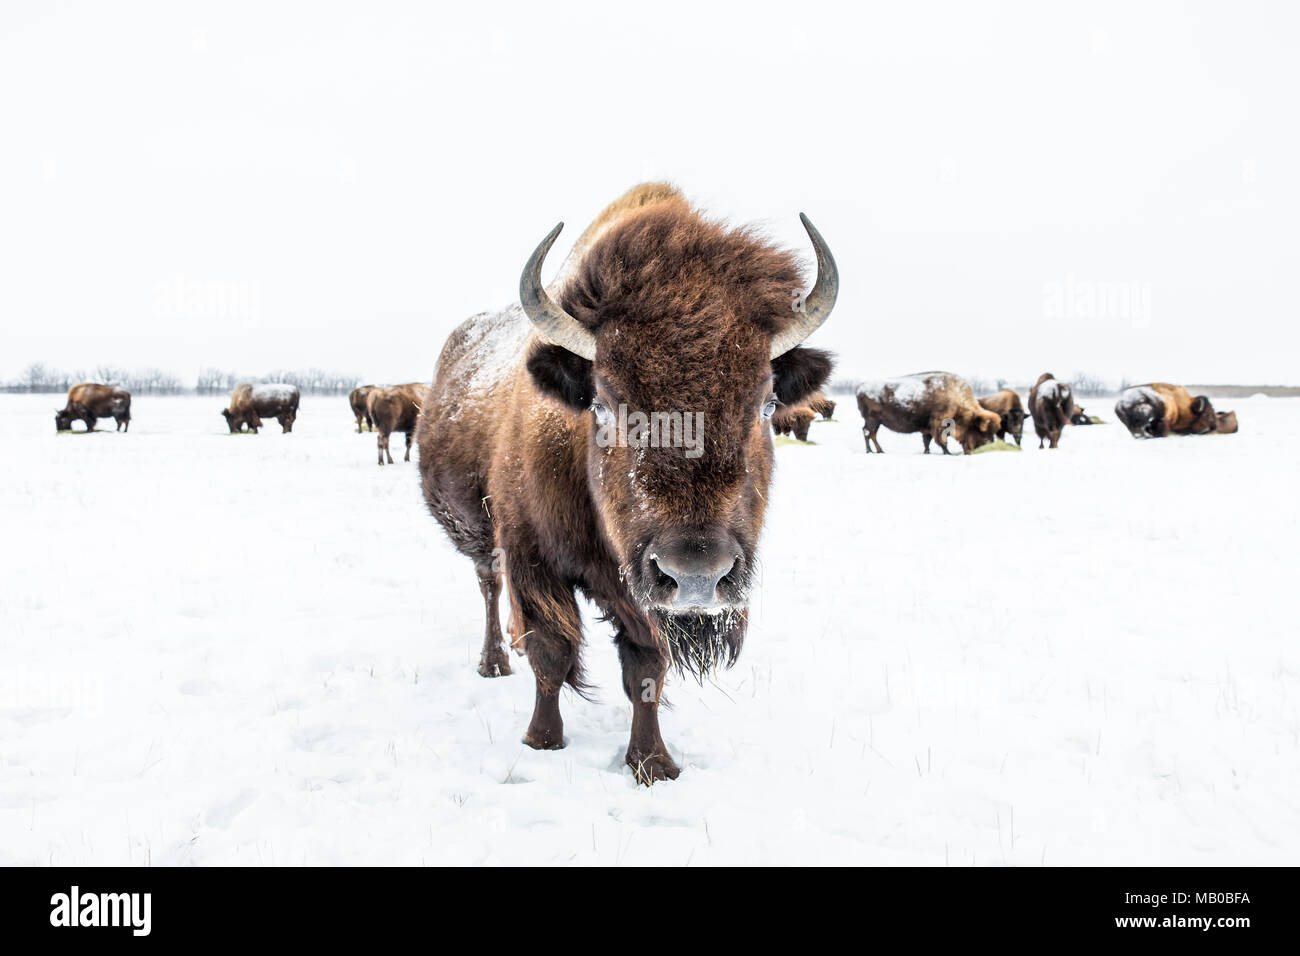 Herd Of Plains Bison, (Bison bison bison) or American Buffalo, in winter, Manitoba, Canada. - Stock Image